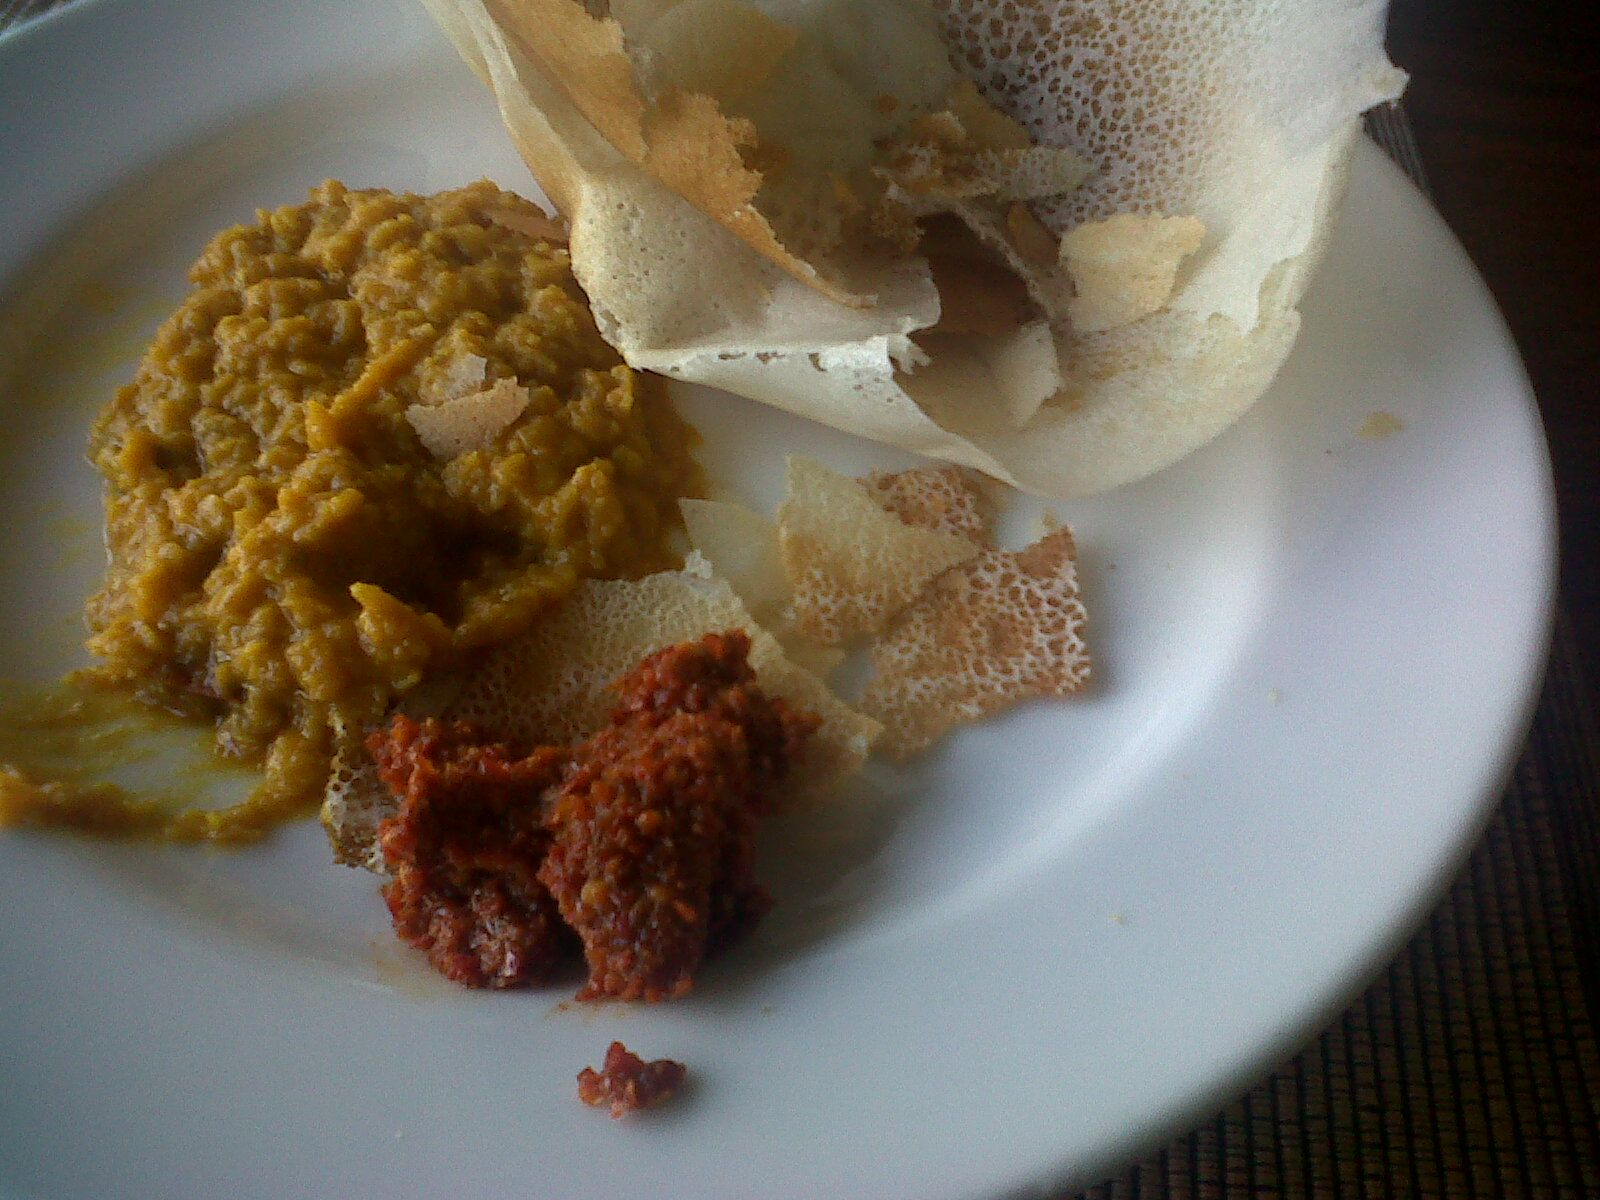 mouthwatering breakfast uppam & dhal! Cuisine